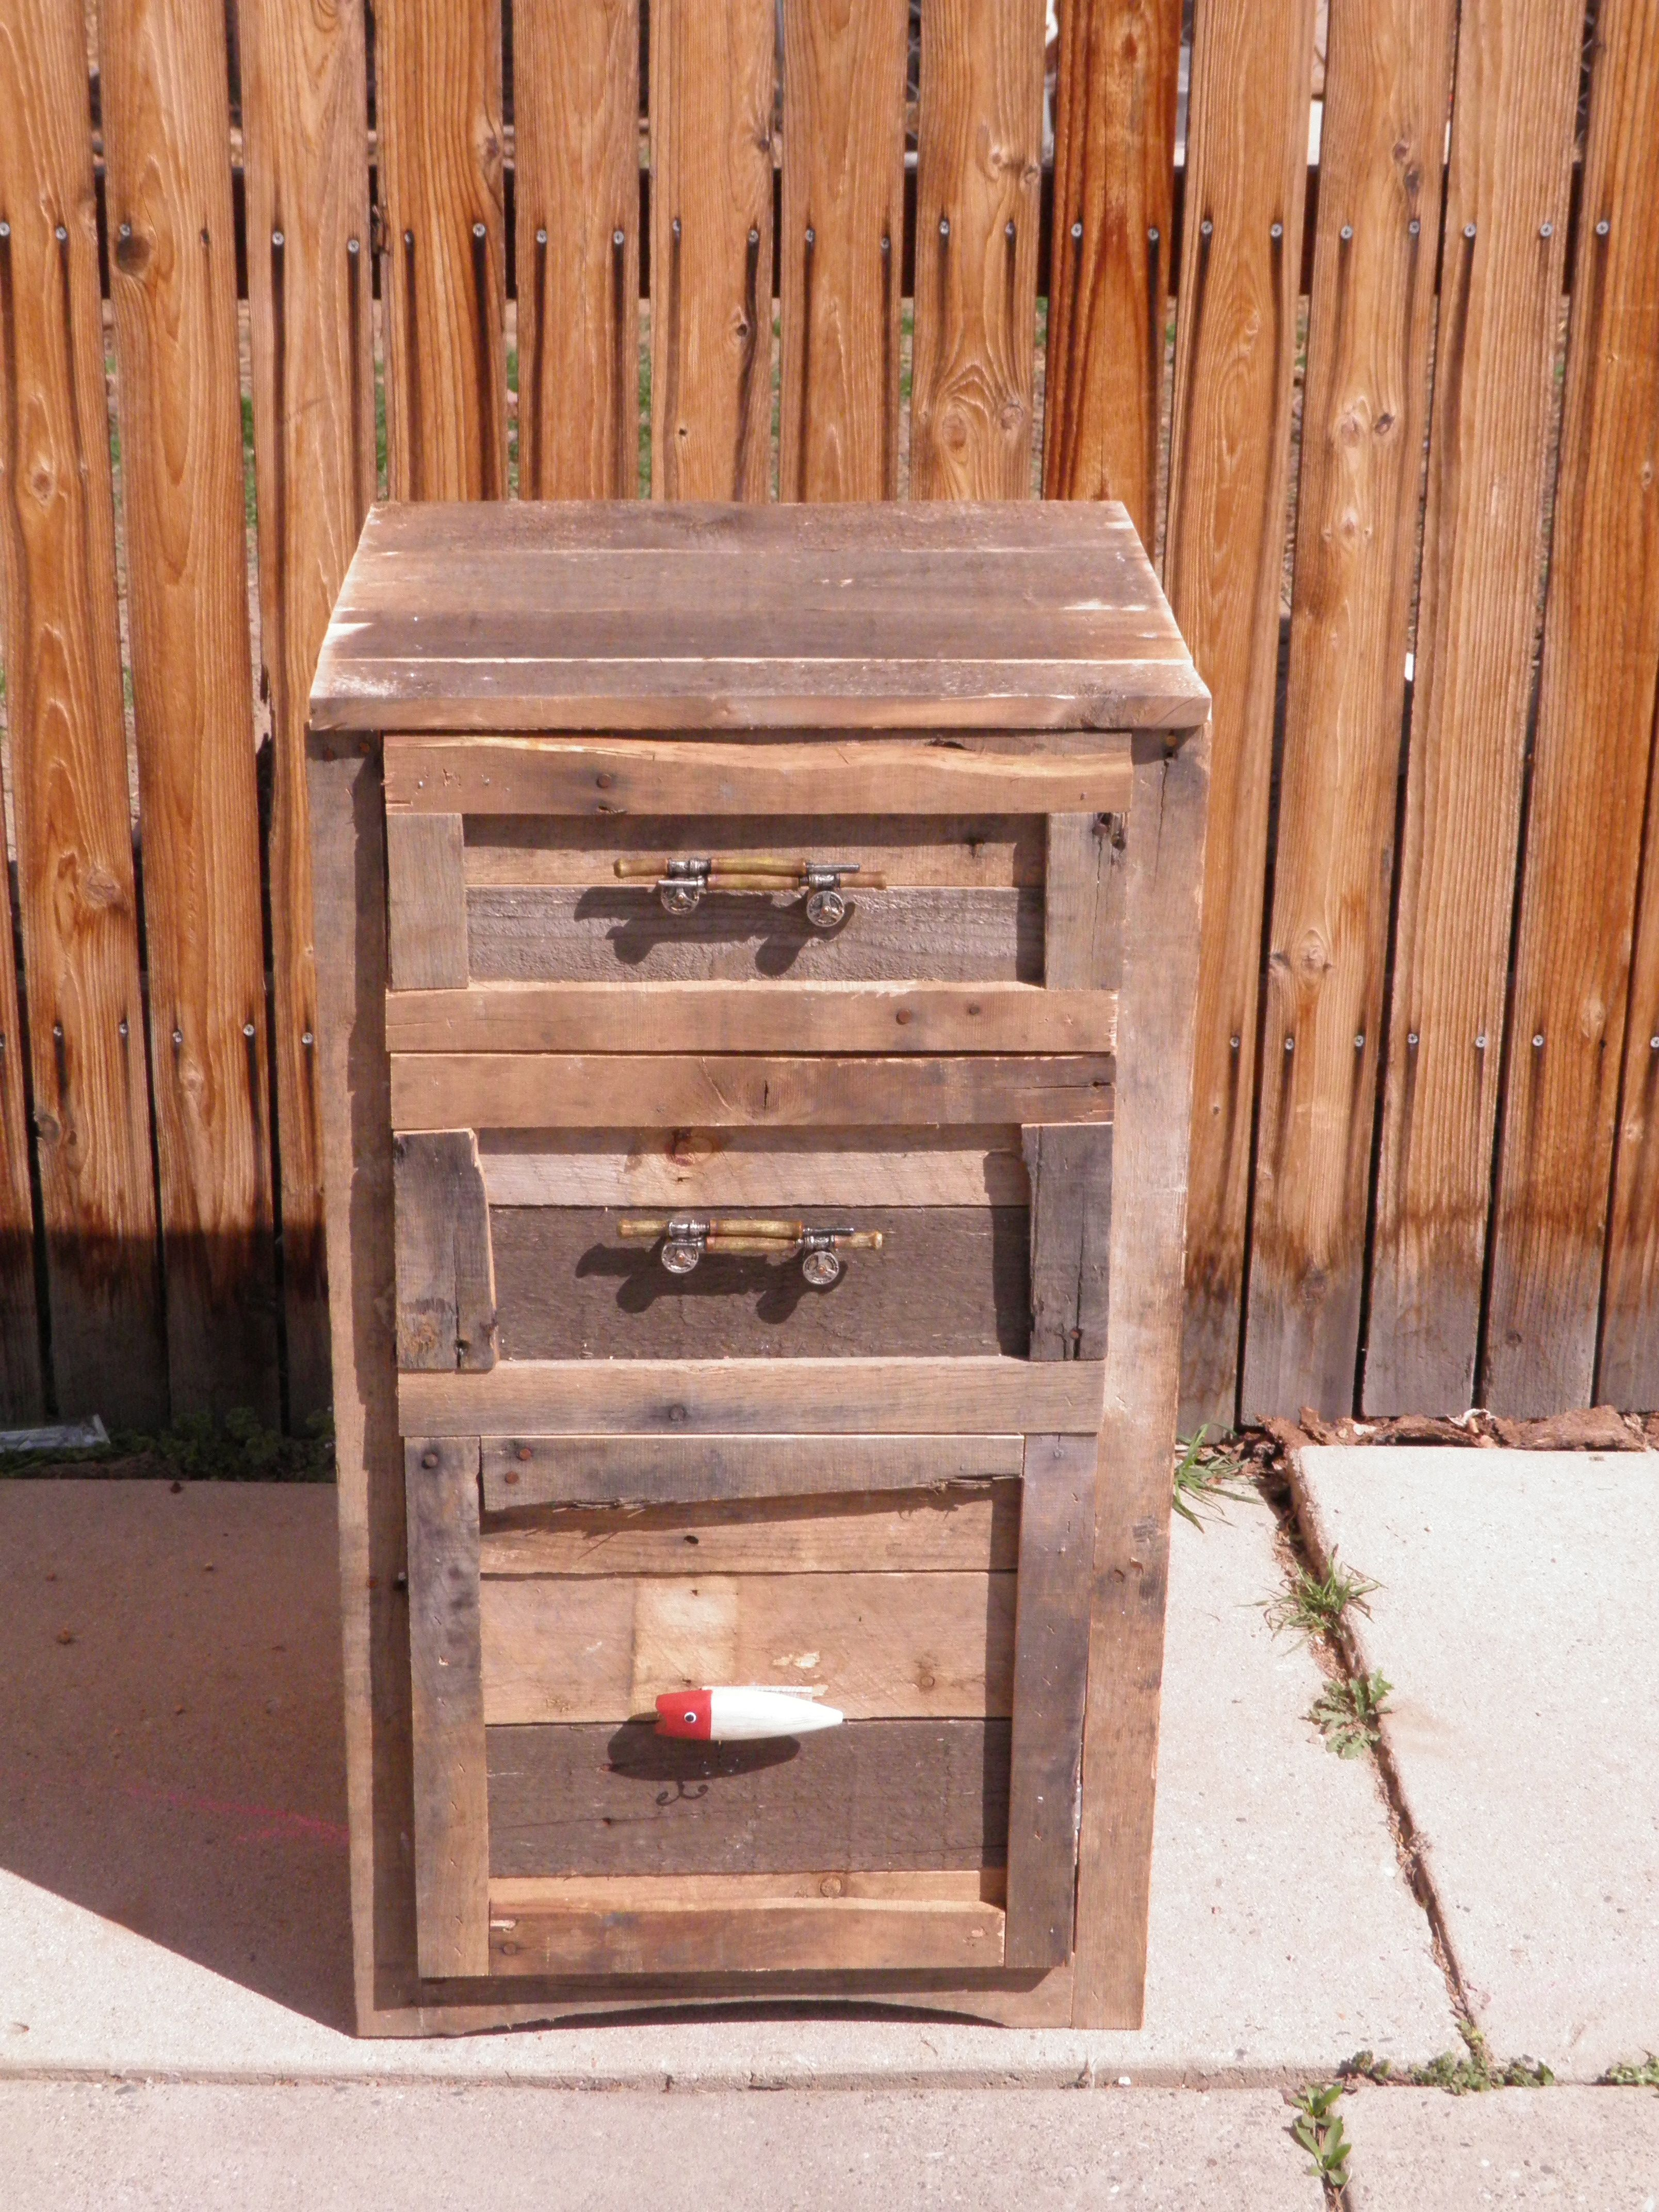 First pallet project pallet projects pinterest Pallet ideas